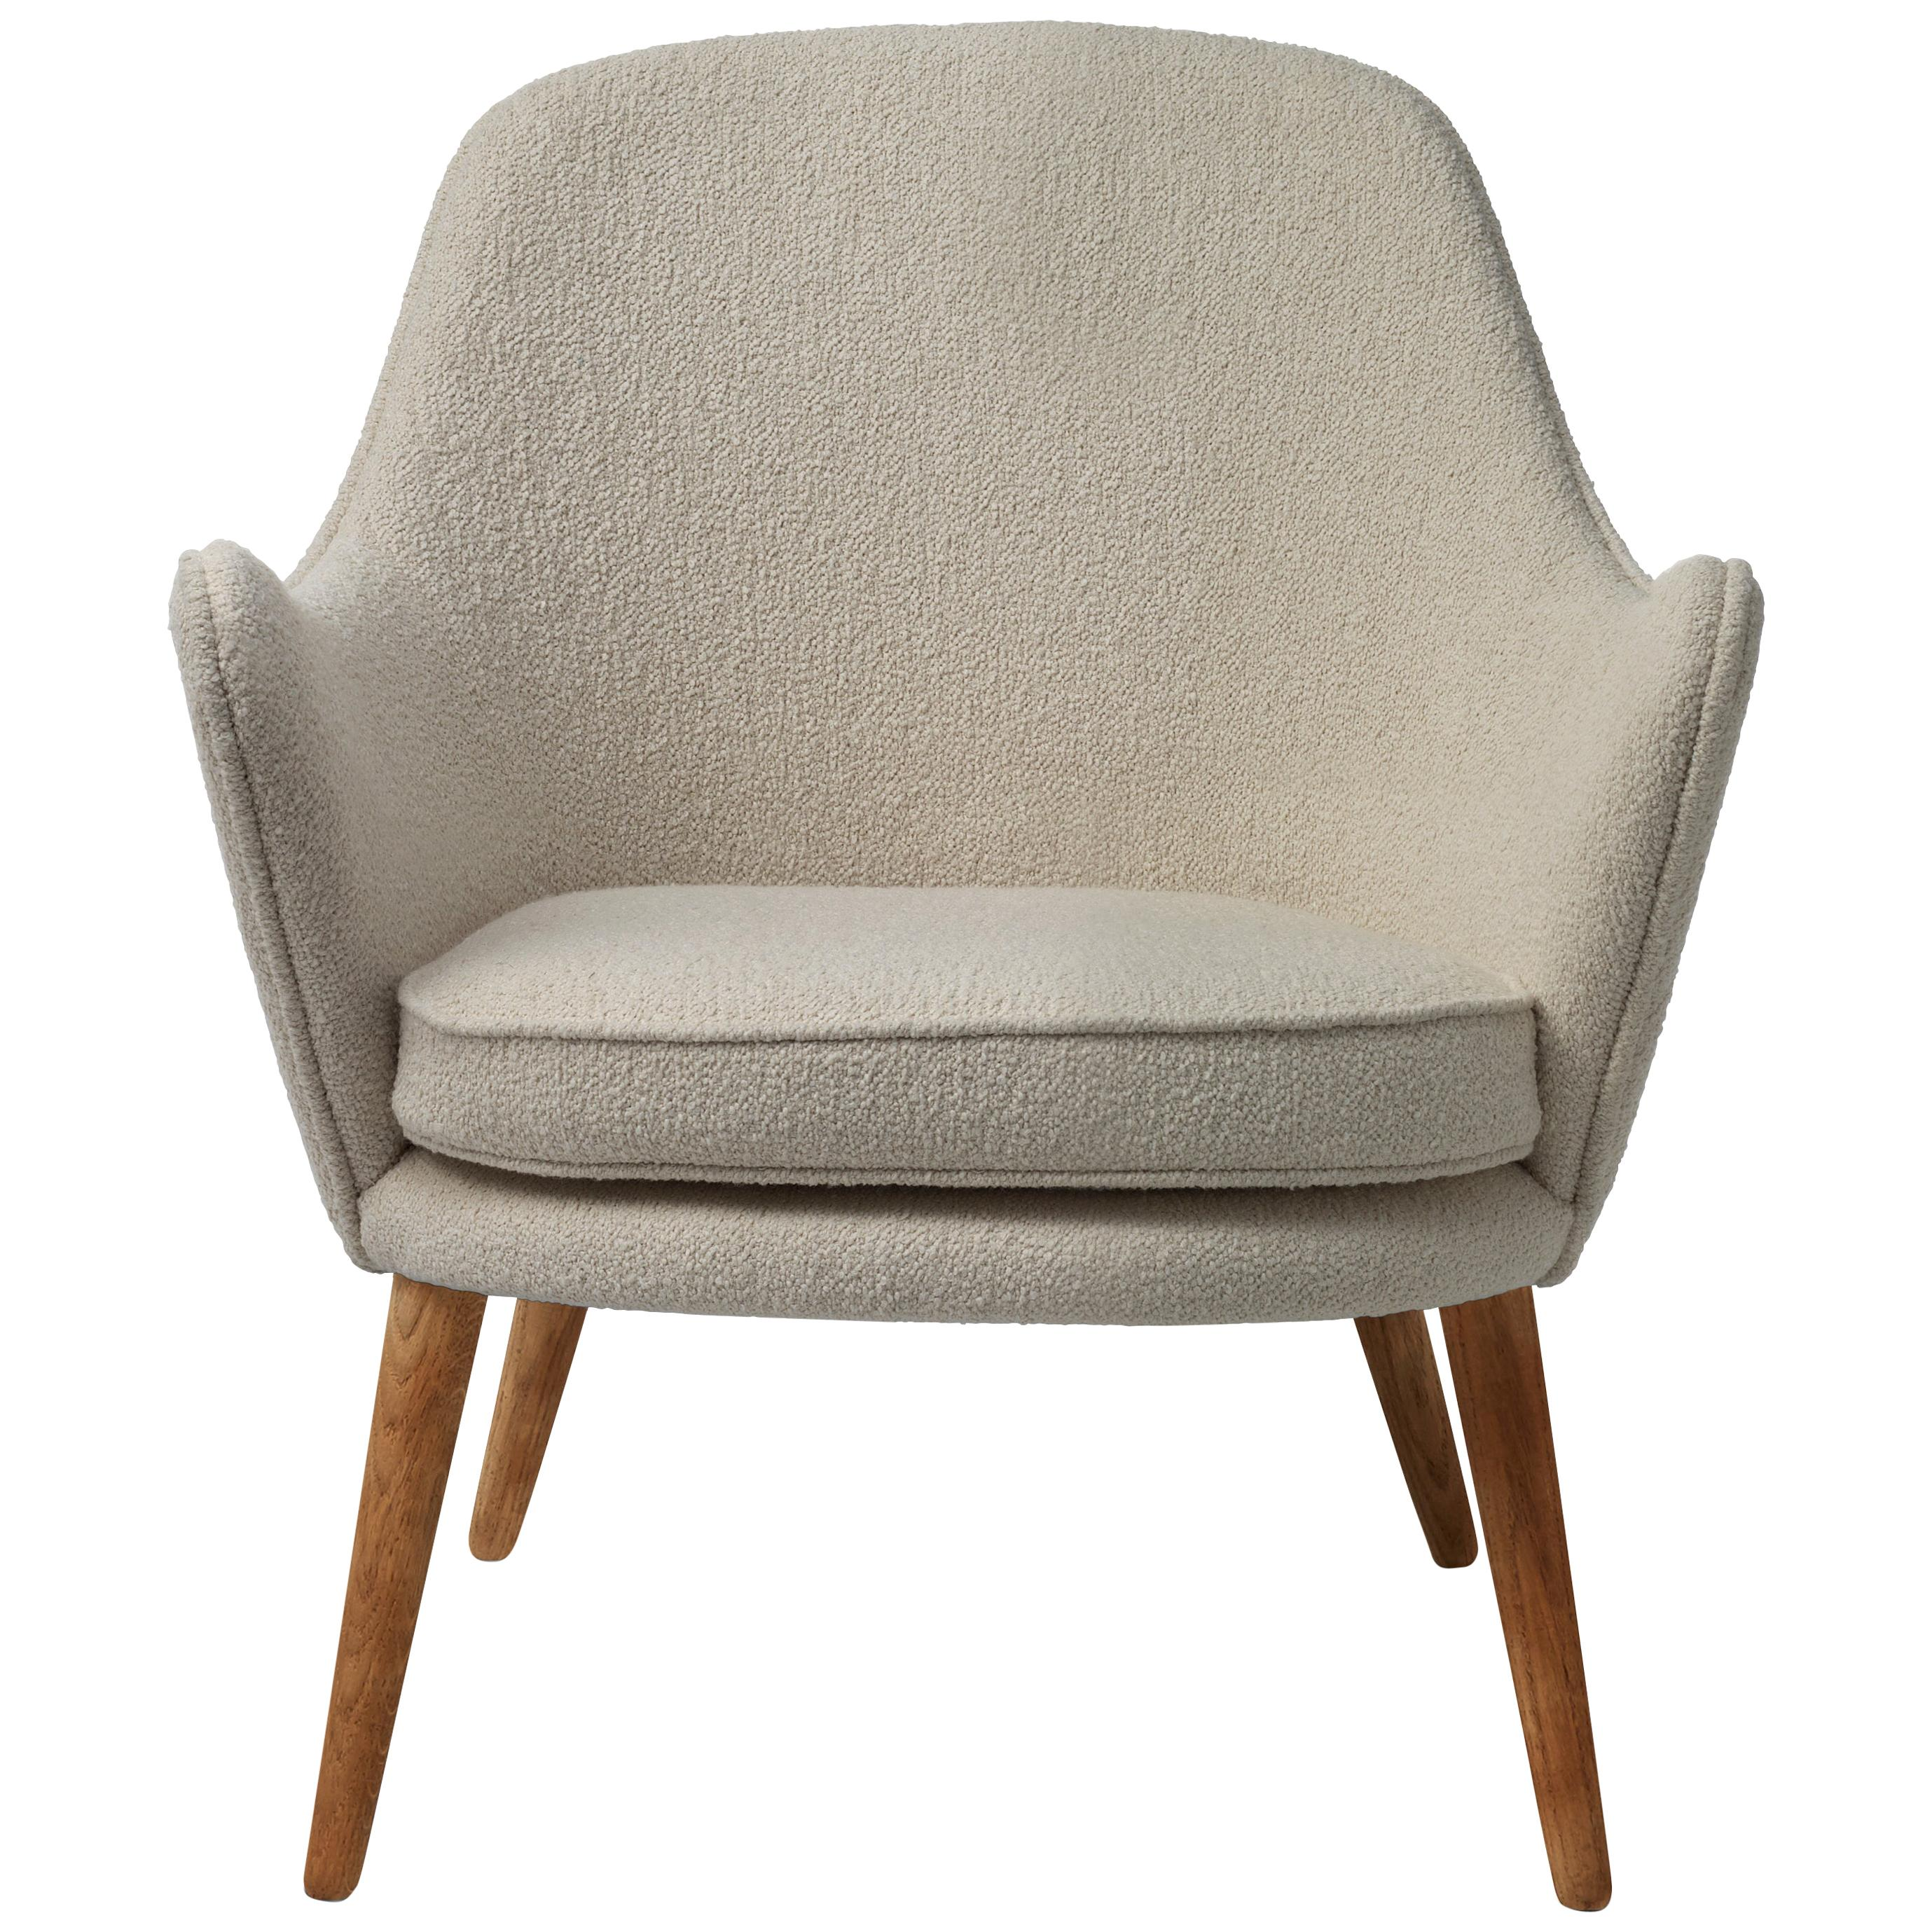 Dwell Lounge Chair, by Hans Olsen from Warm Nordic